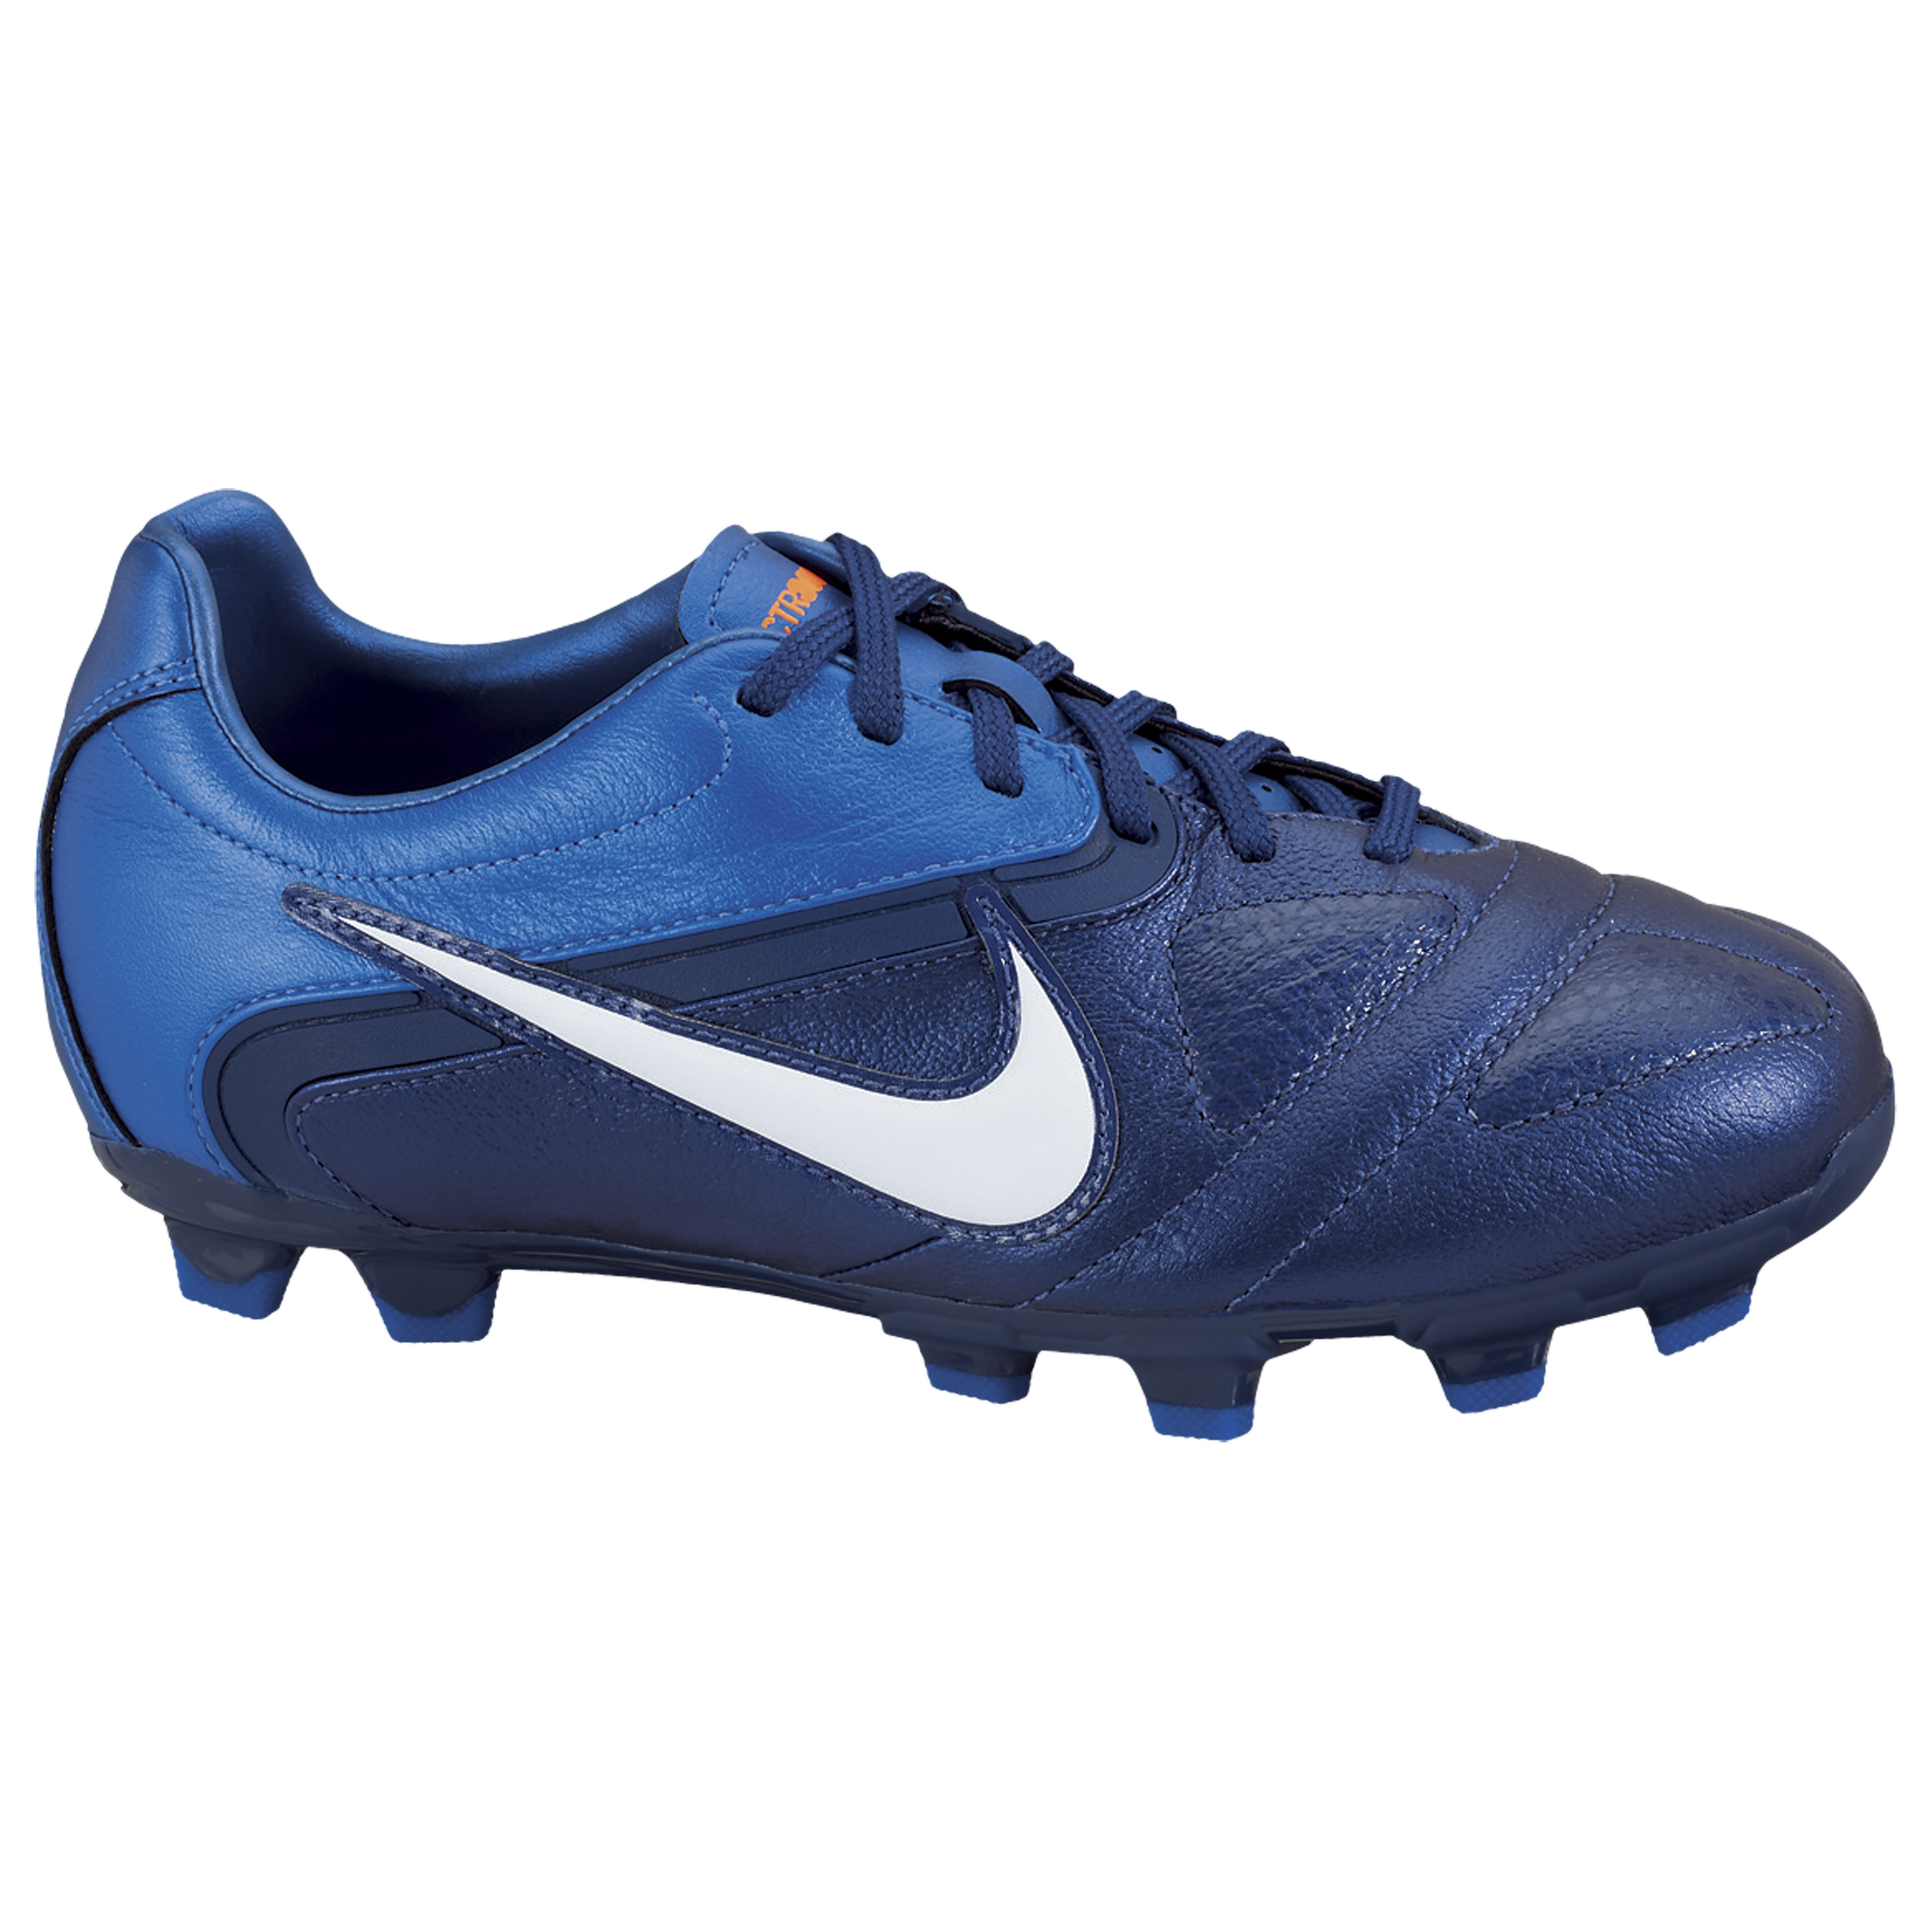 Nike CTR360 Libretto II Firm Ground Football Boots - Loyal Blue/White/Bright Blue/Total Orange - Kids